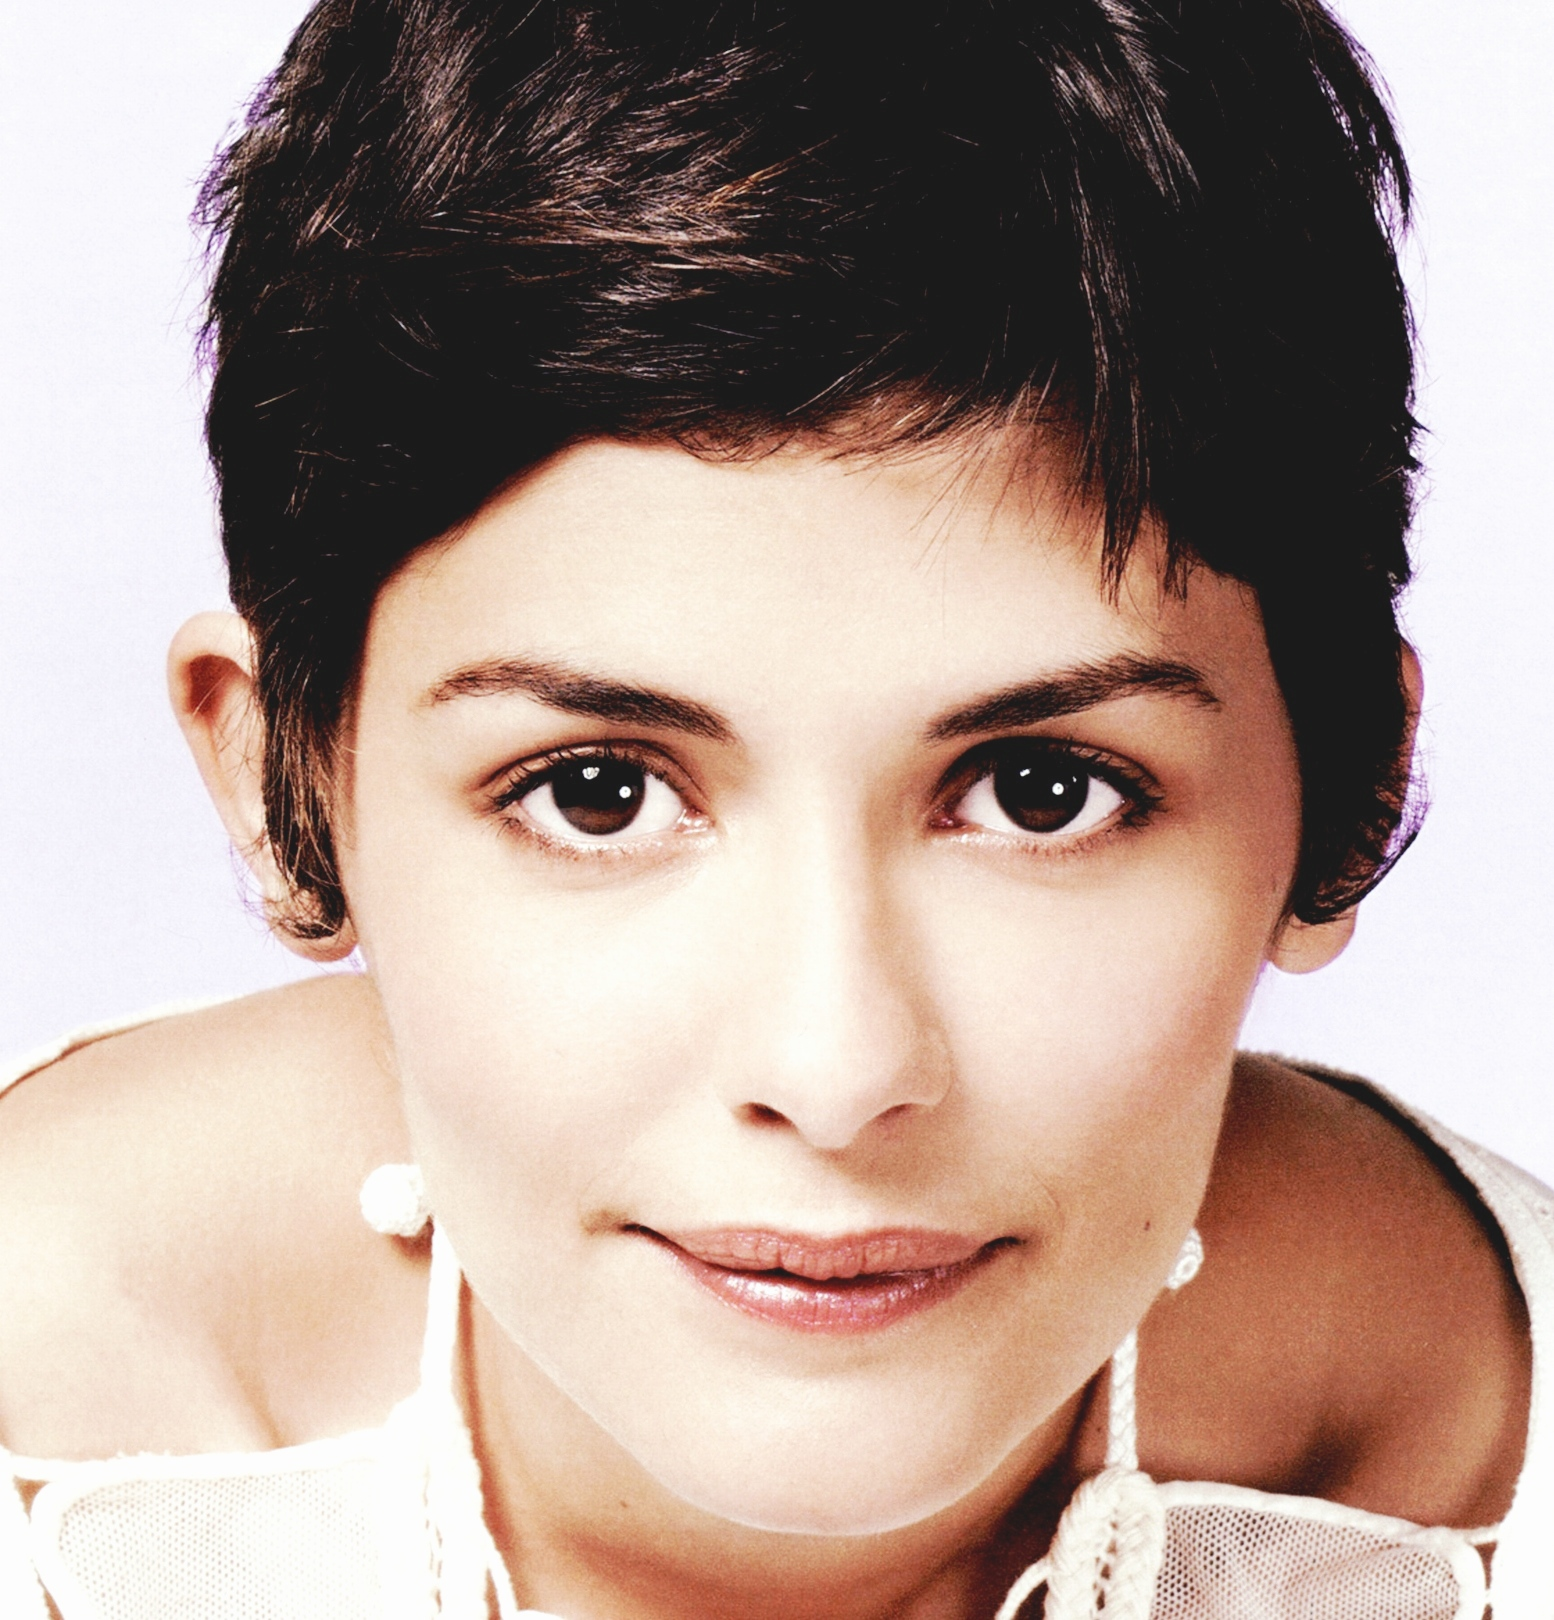 http://www.theplace.ru/archive/audrey_tautou/img/Audrey_Tautou.jpg